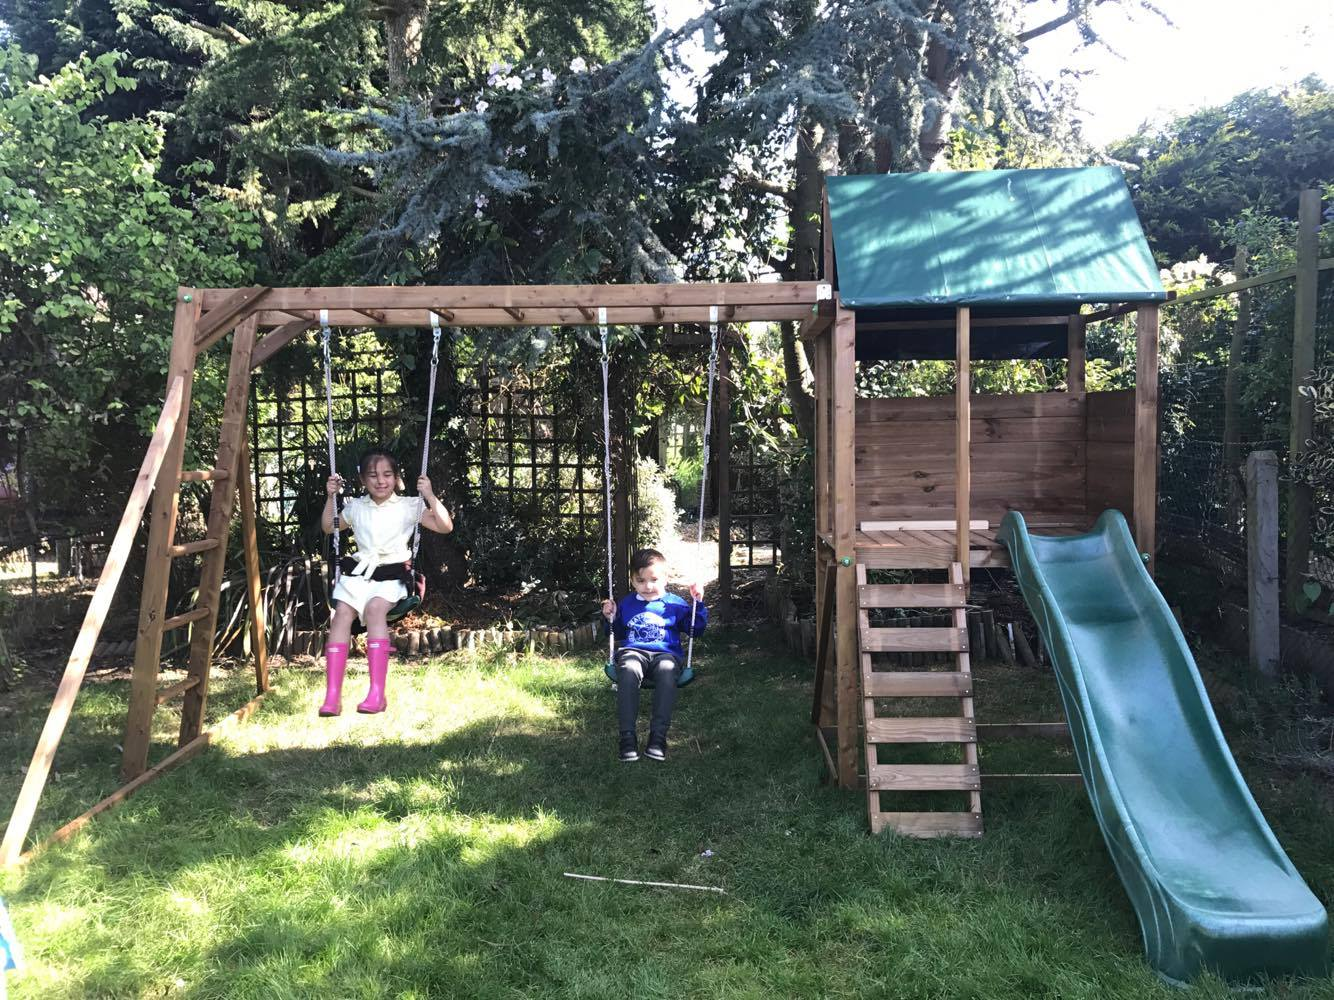 Climbing Frame from Dunster House with kids swinging